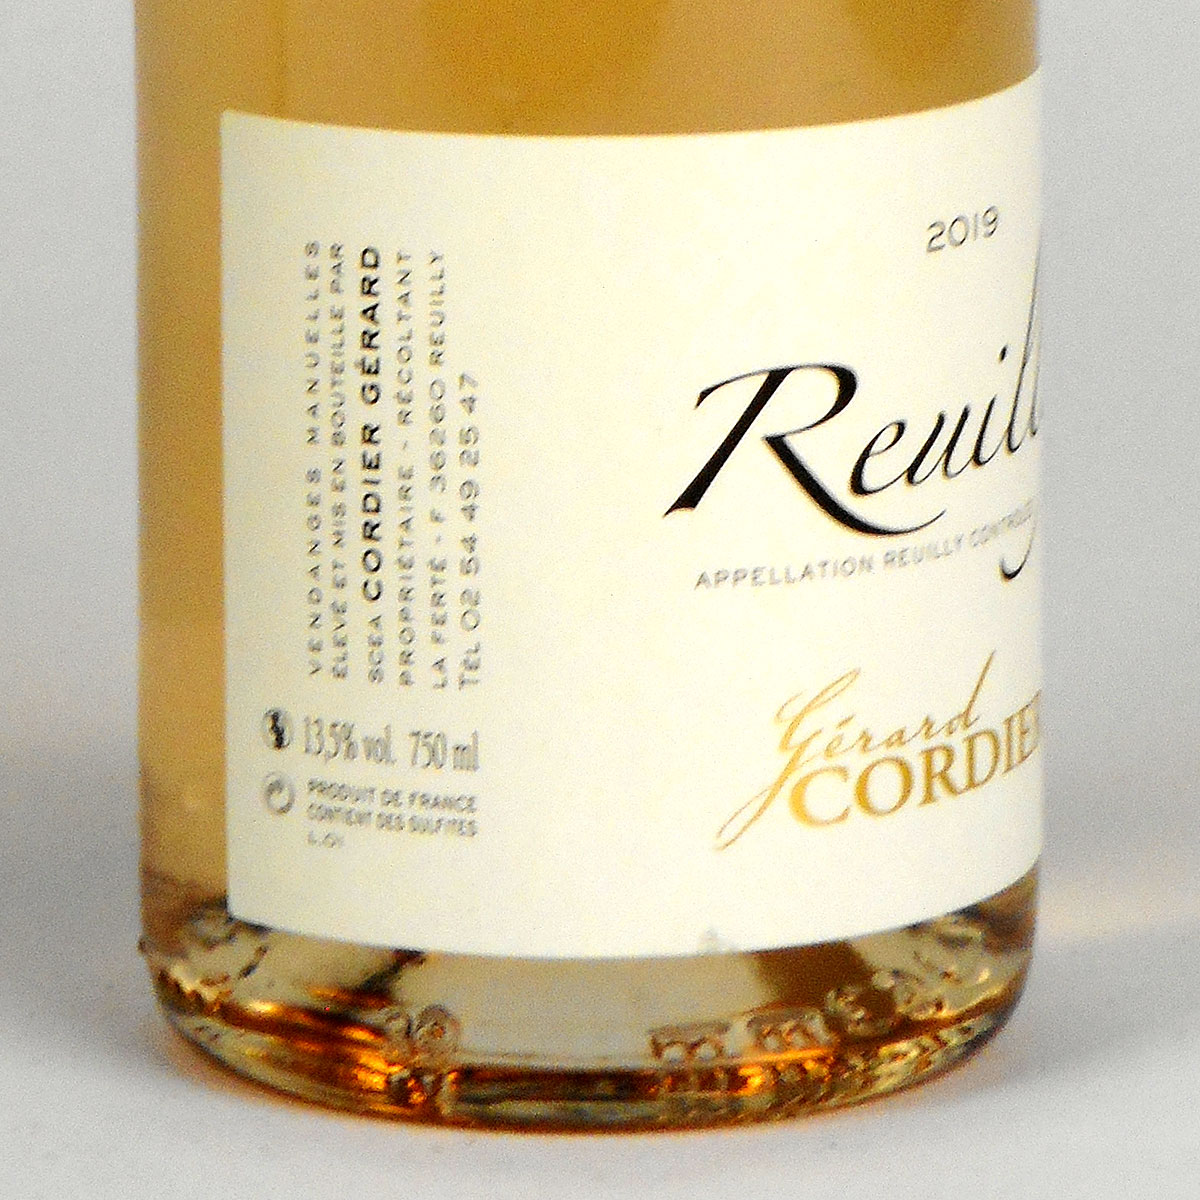 Reuilly: Gerard Cordier Pinot Gris 2019 - Bottle Side Label